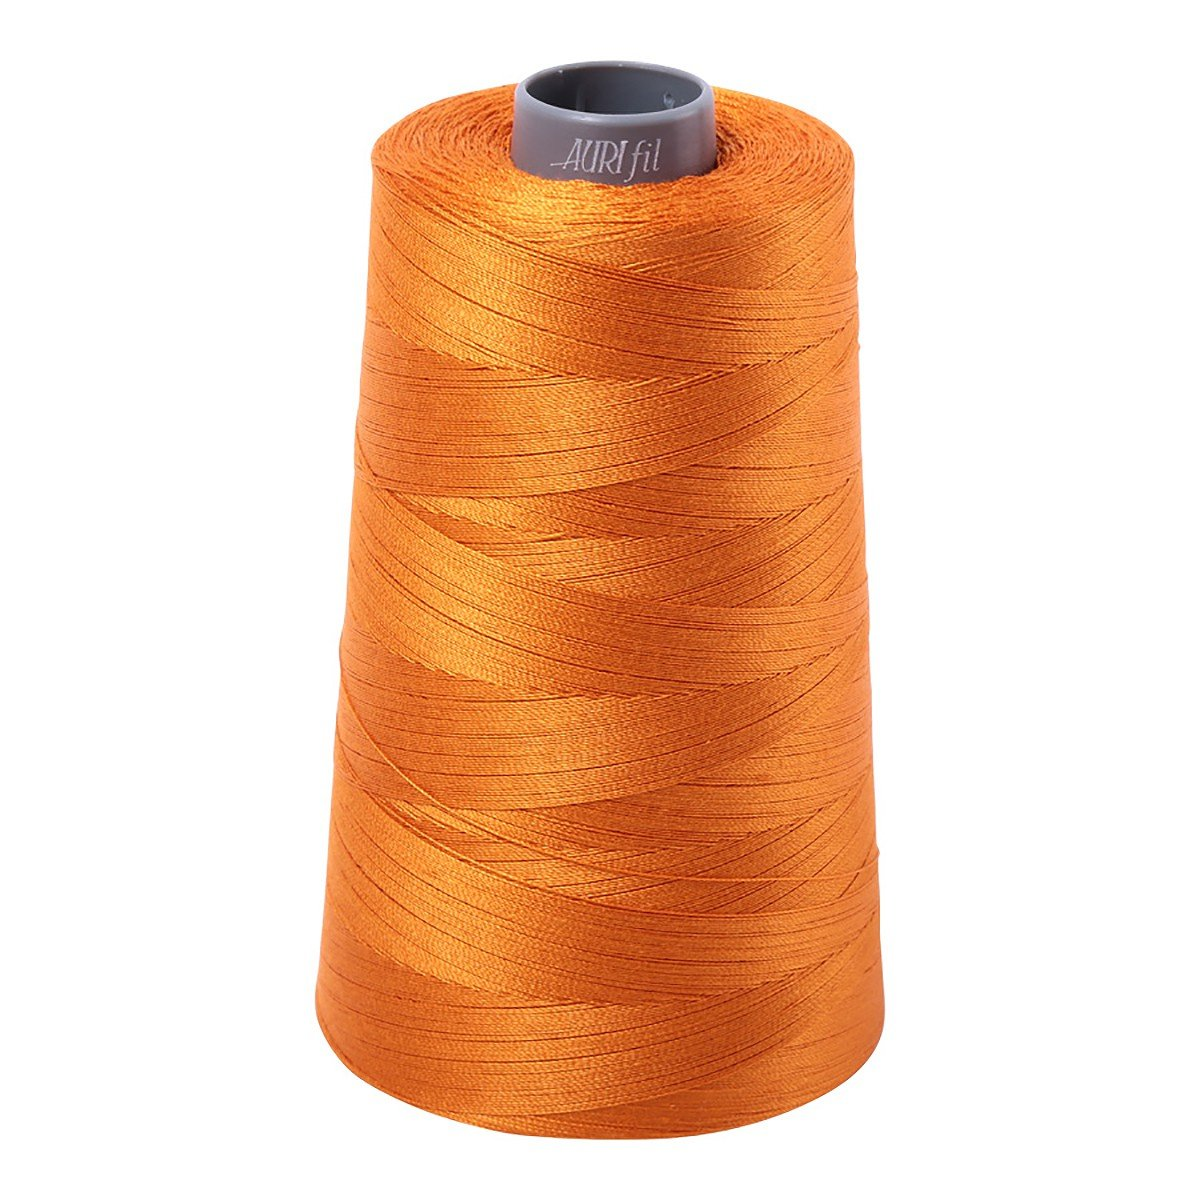 Mako (Cotton) Embroidery Thread 28wt 3609yds Bright Orange